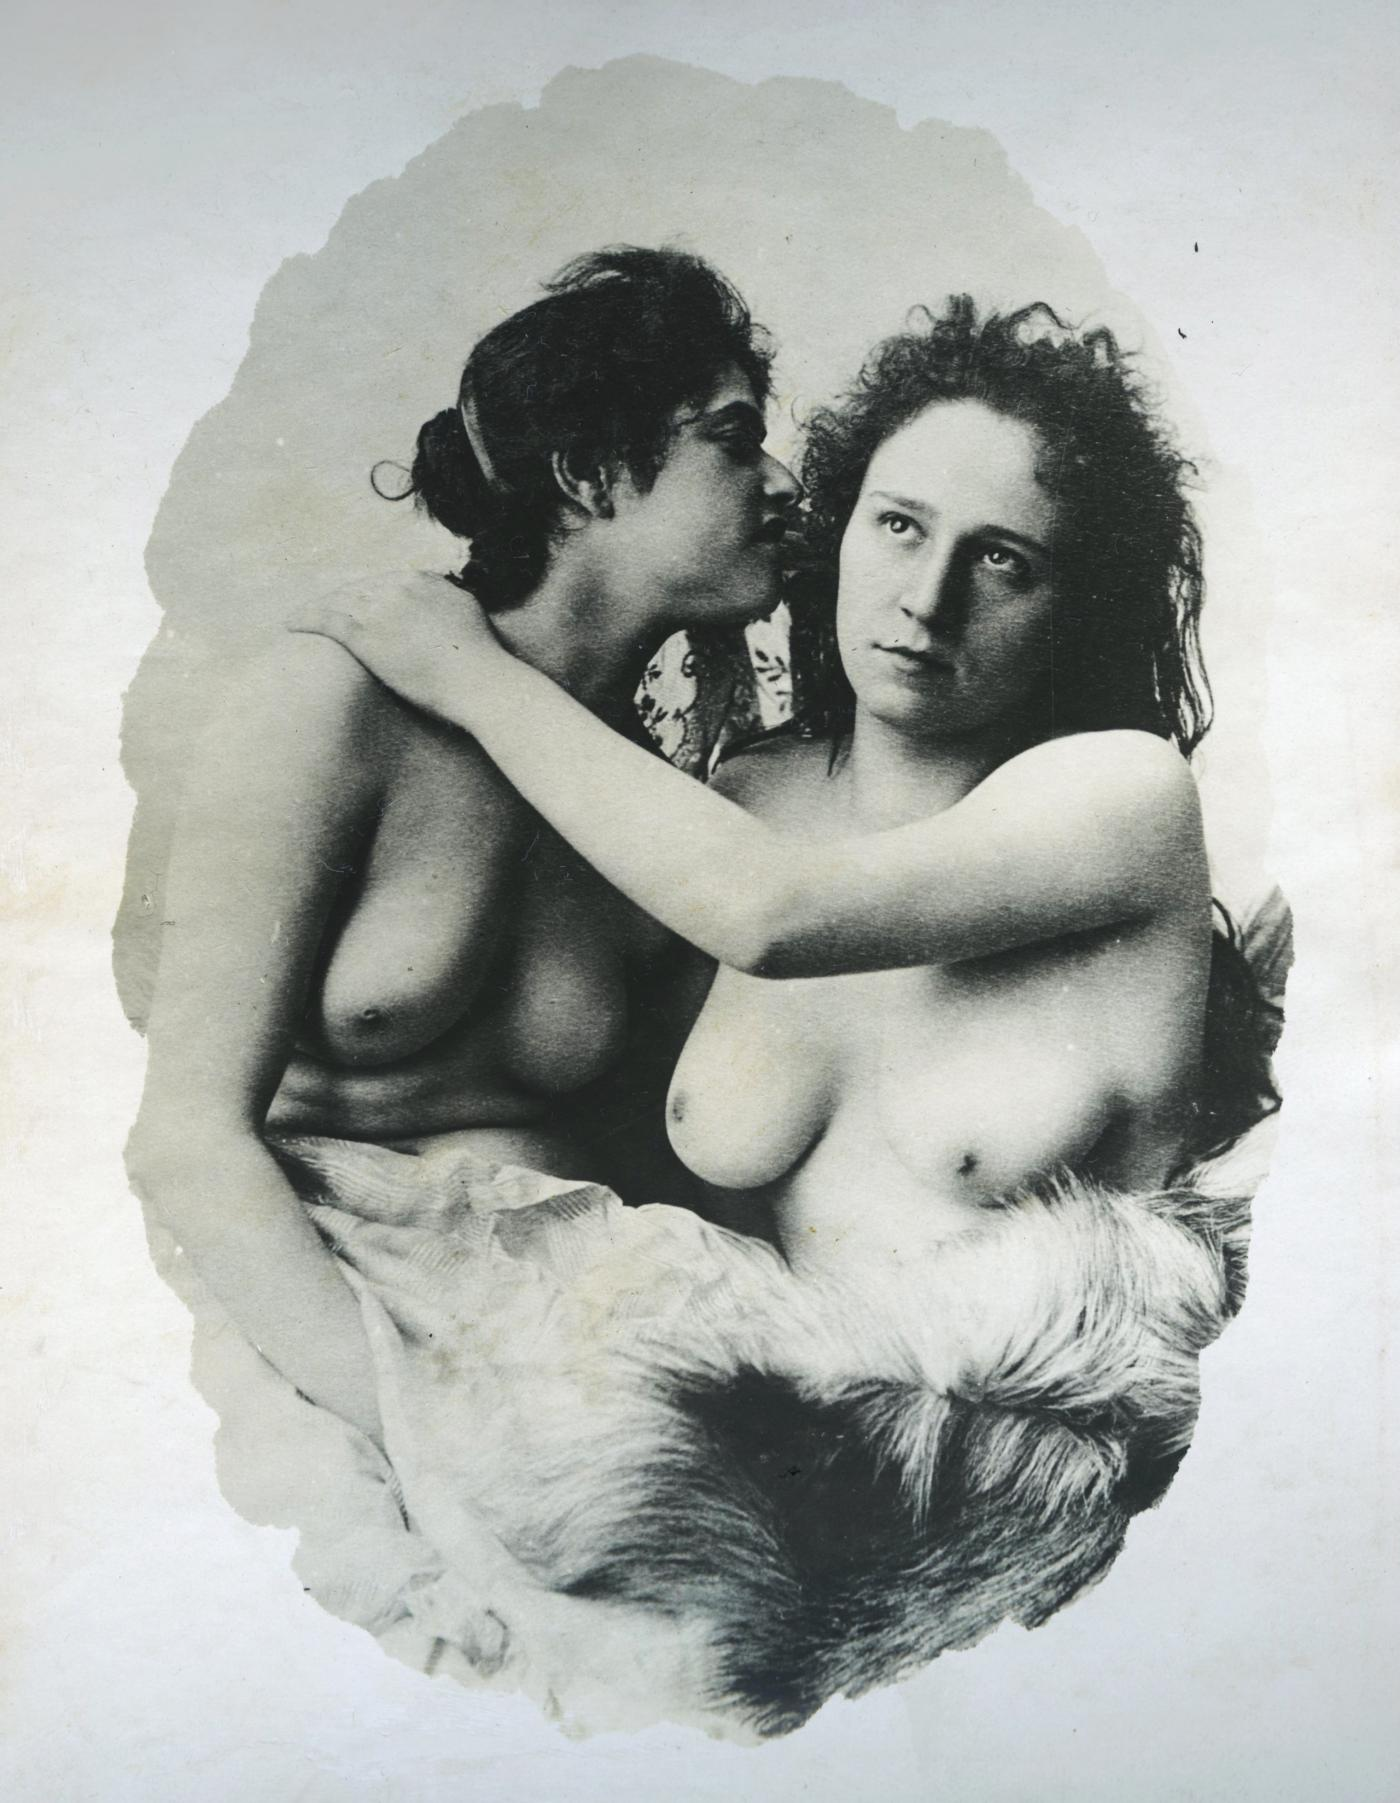 vintage photo of two topless woman at a brothel